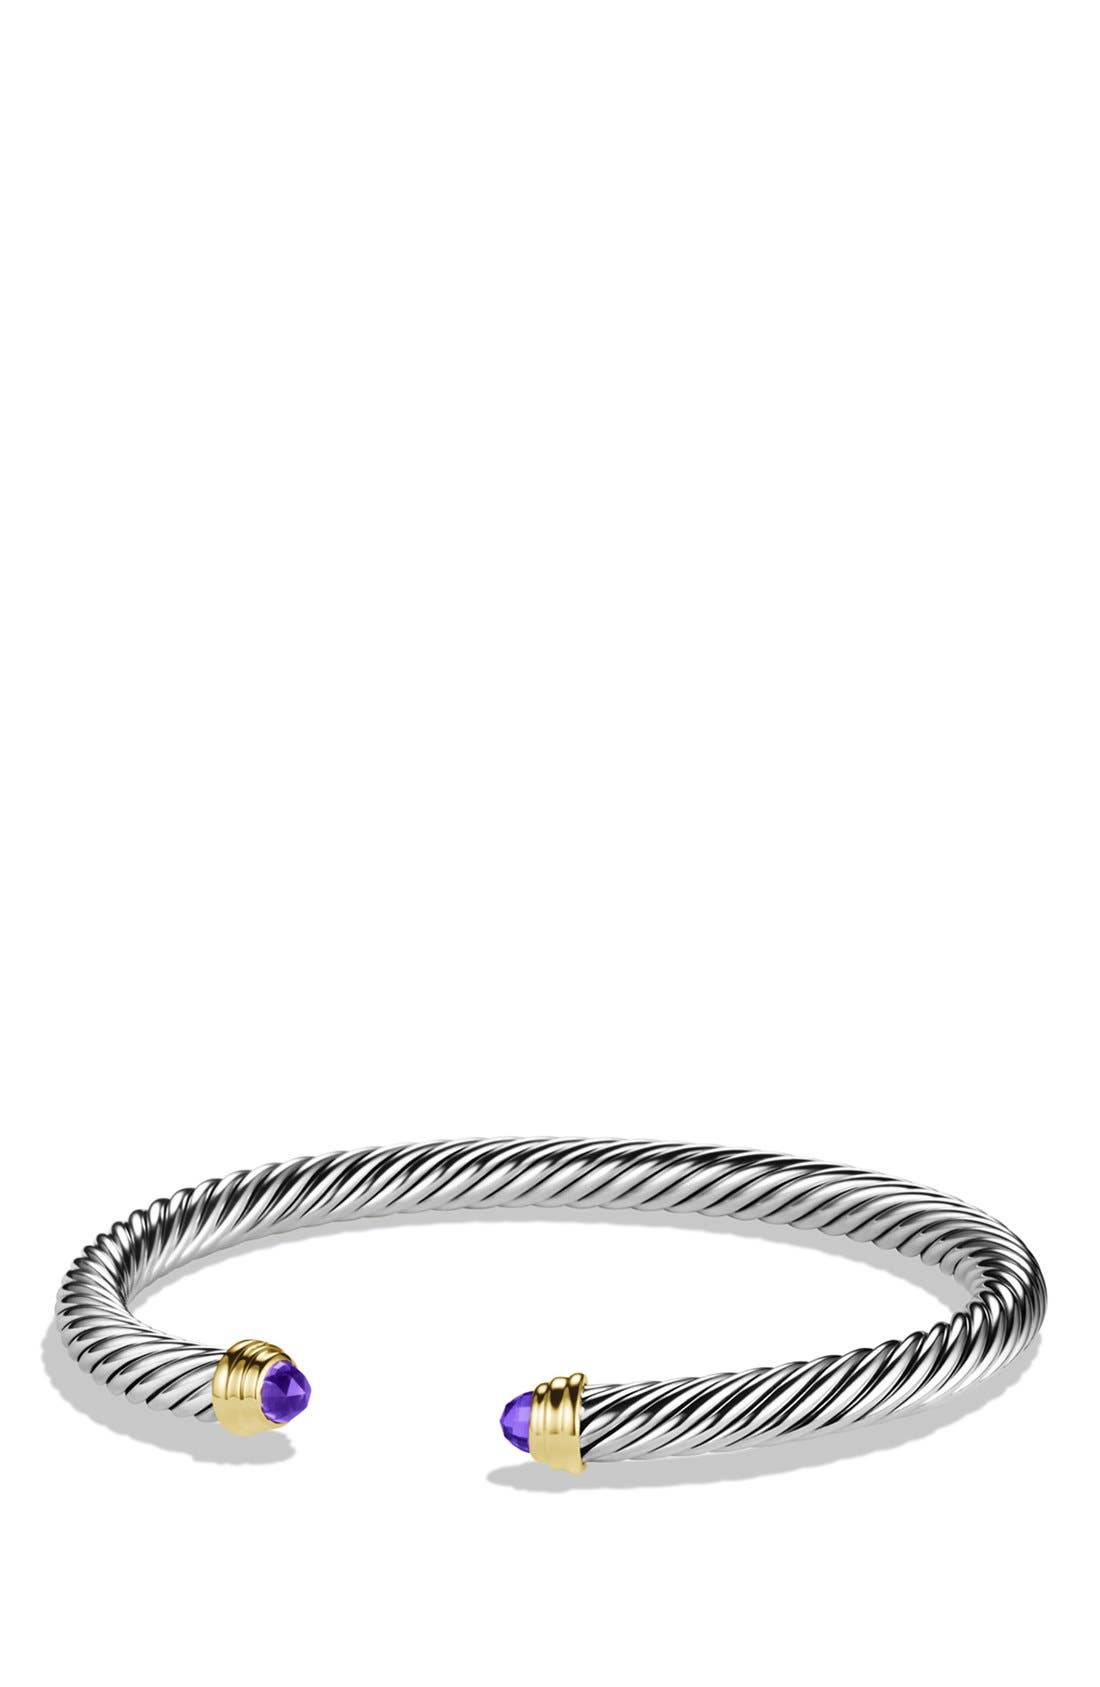 Alternate Image 1 Selected - David Yurman 'Cable Classics' Bracelet with Semiprecious Stones & Gold